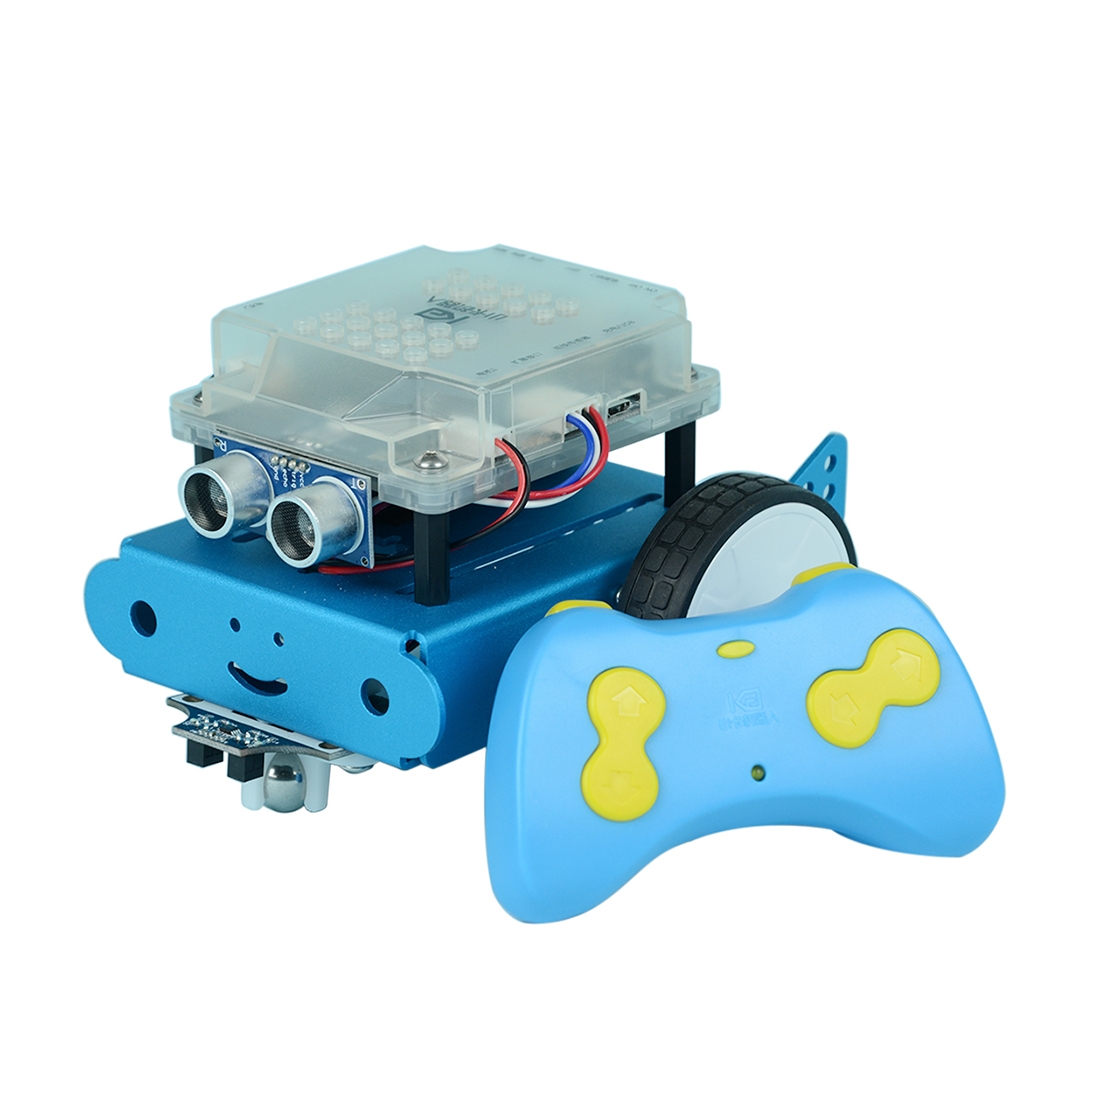 Programmable Robot DIY Obstacle Avoidance Car Graphic Programming Steam Scratch Educational Learning Kit with RC Handle - Blue